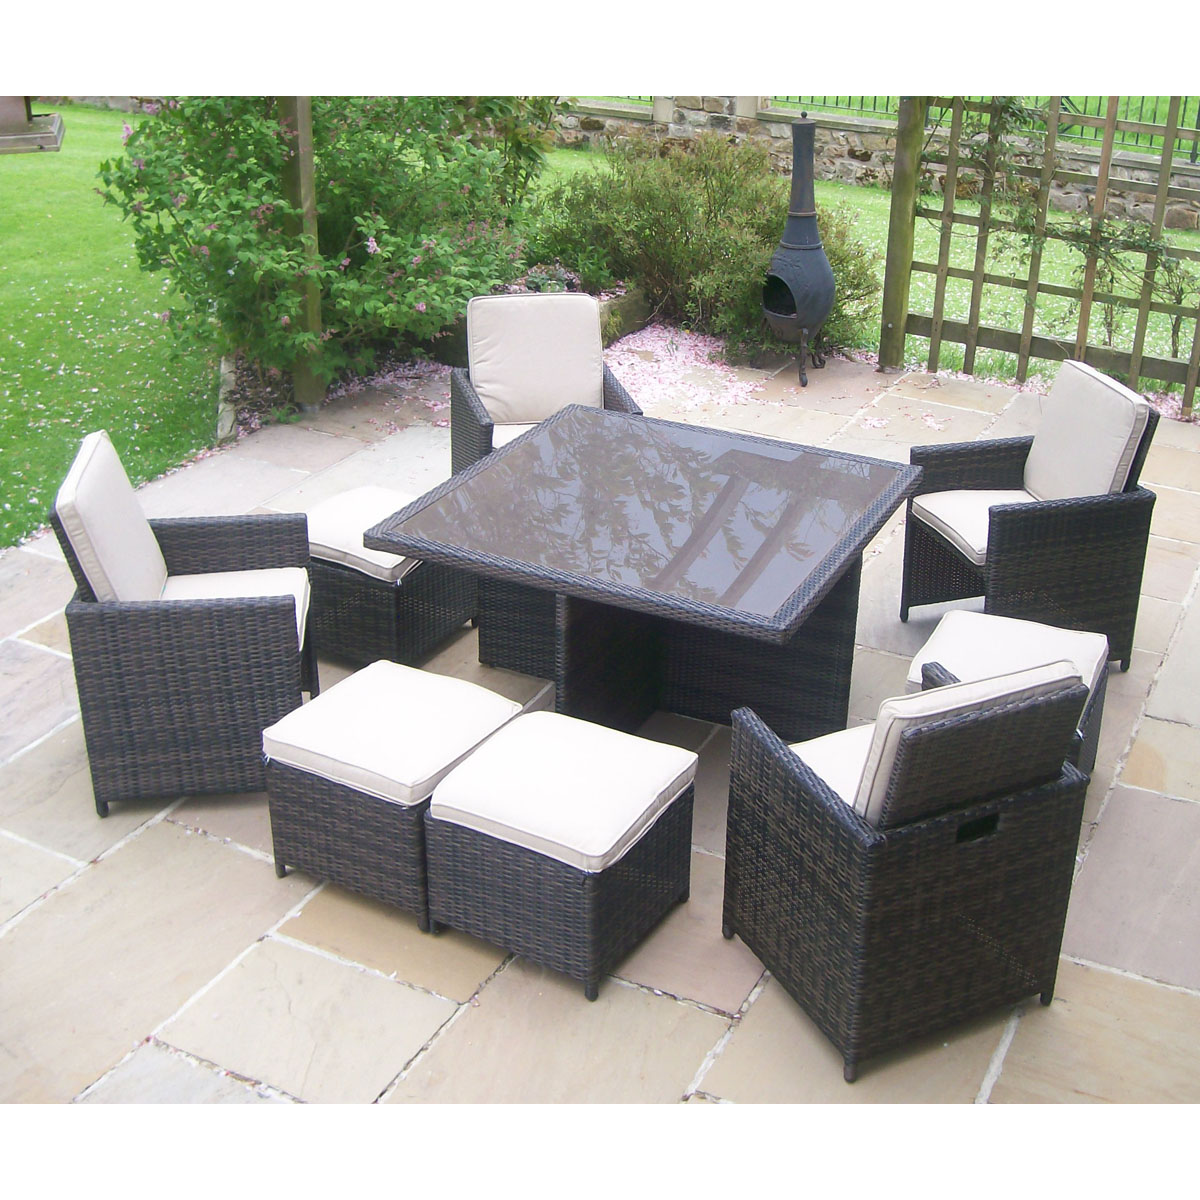 Rattan wicker garden furniture table 4 chair patio set ebay for Garden patio furniture sets